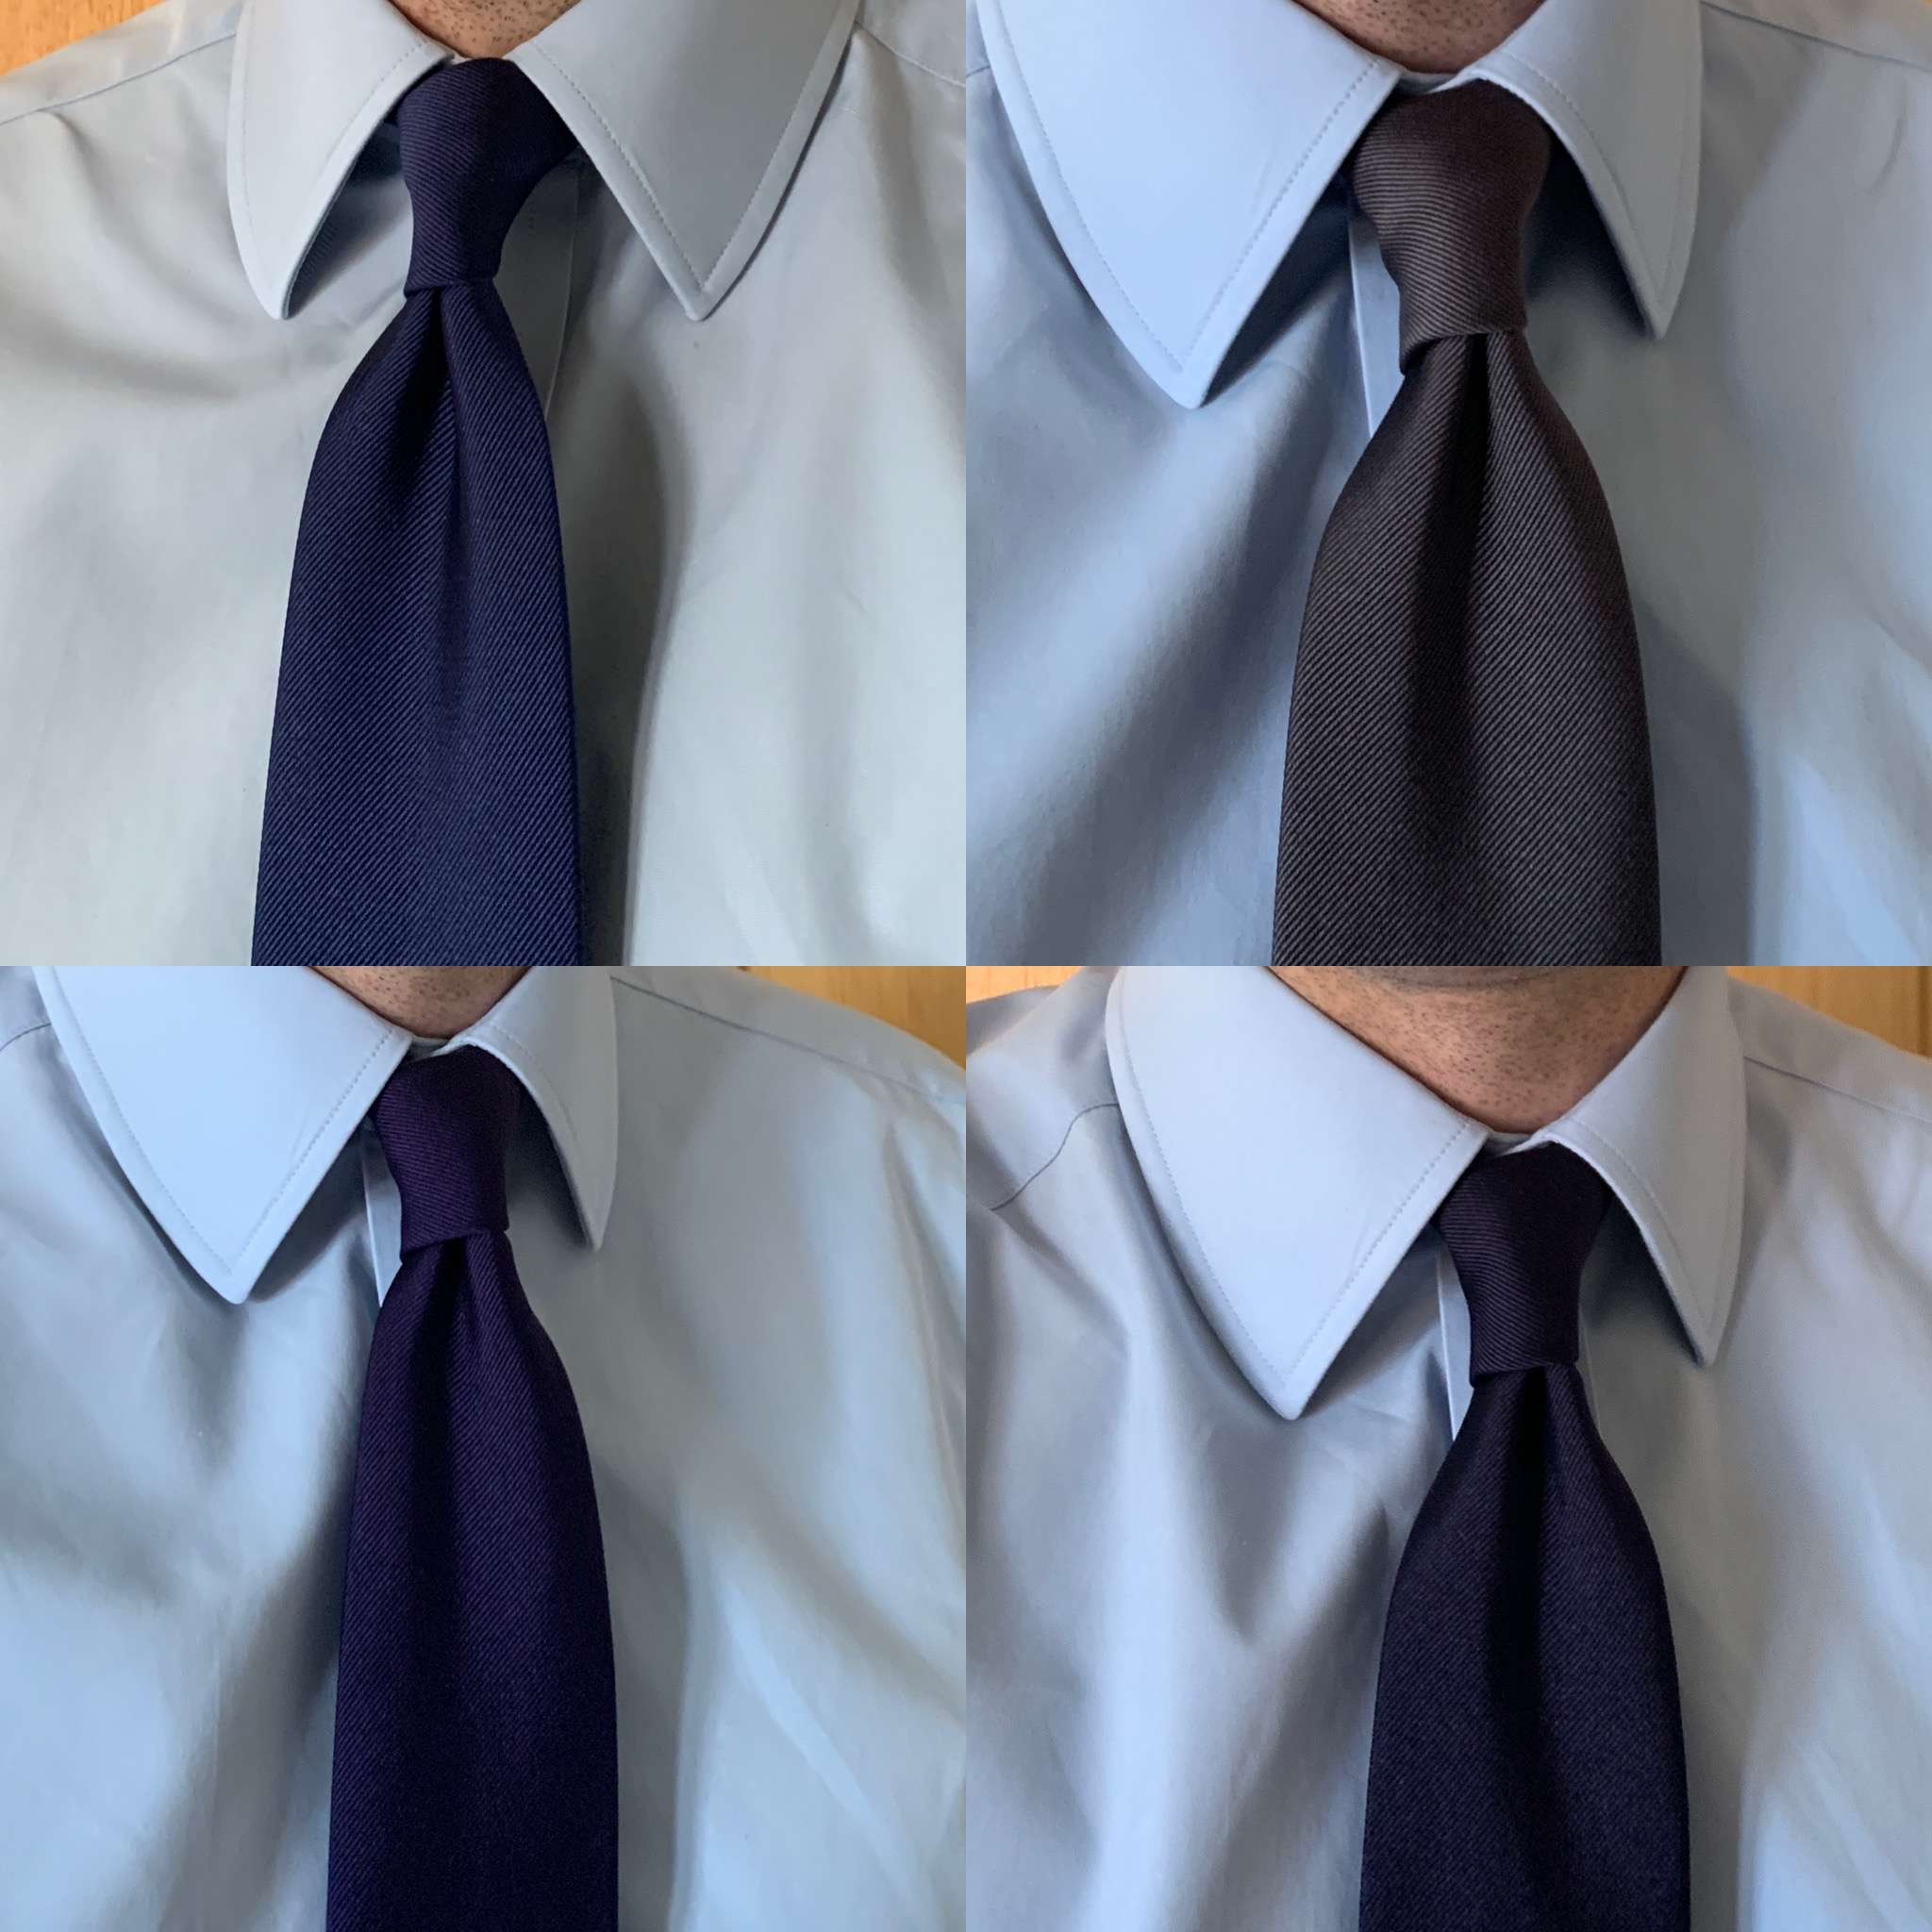 Tom Ford Spectre Ties